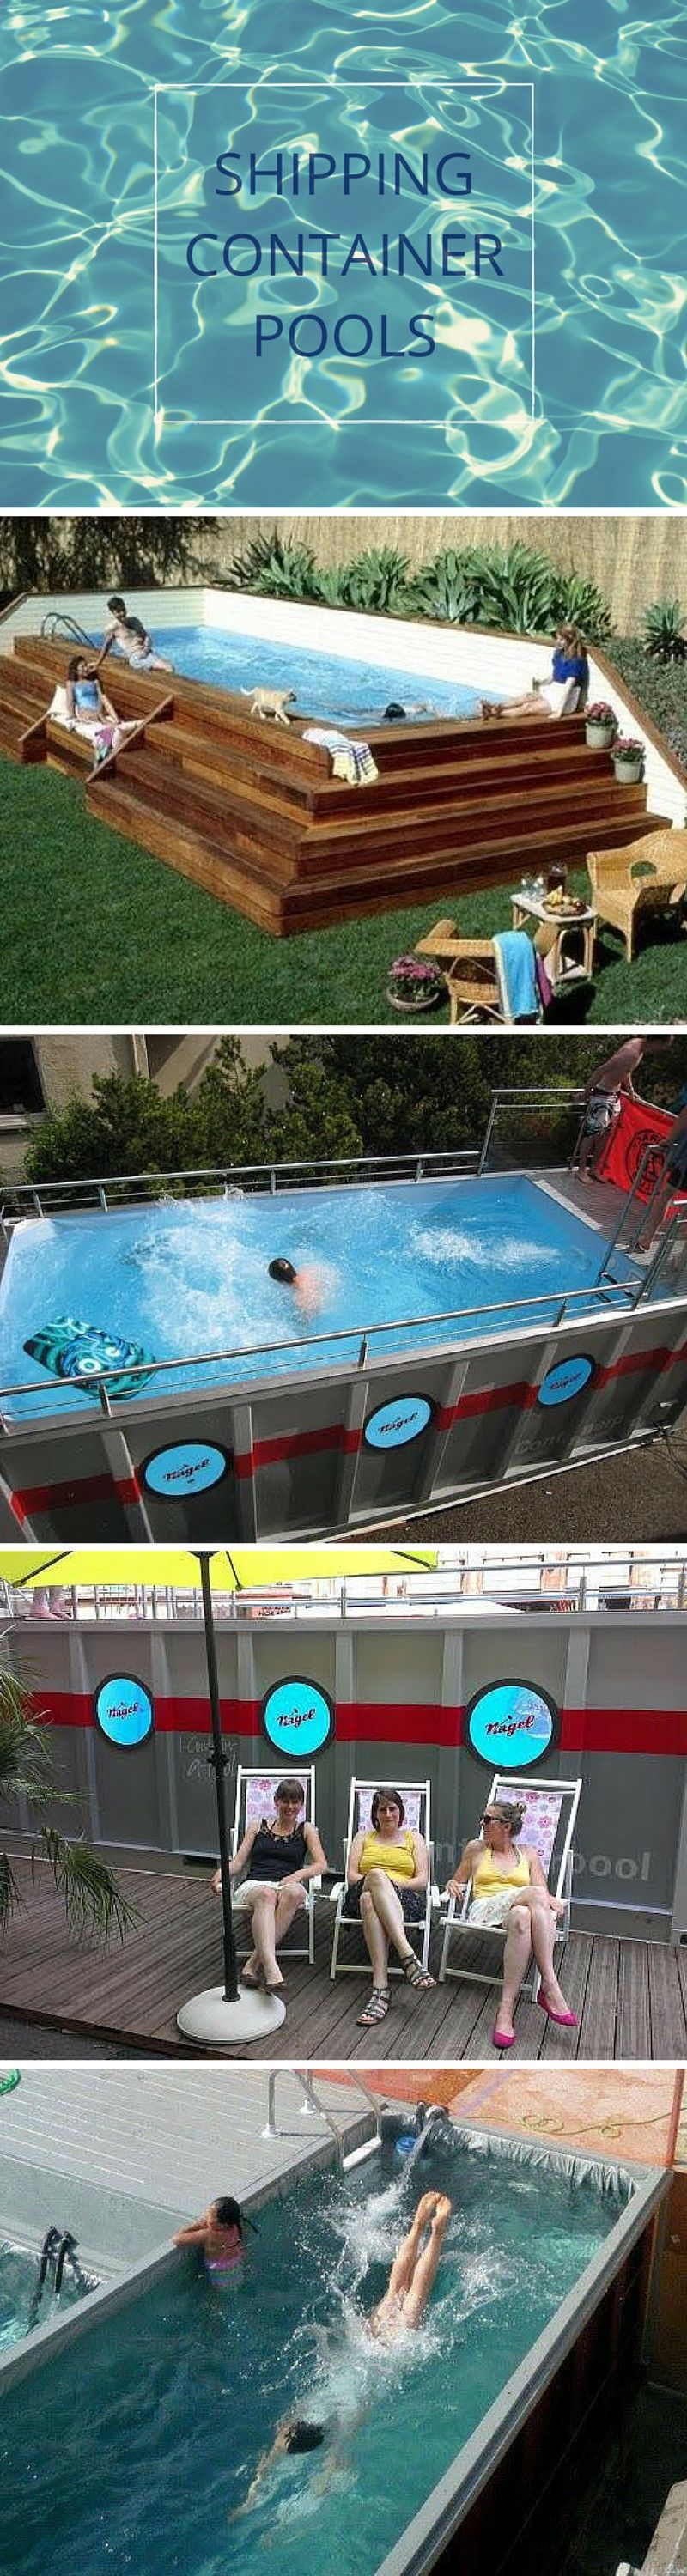 Container House Shipping Pool What Great Alternative Traditional Pools Www